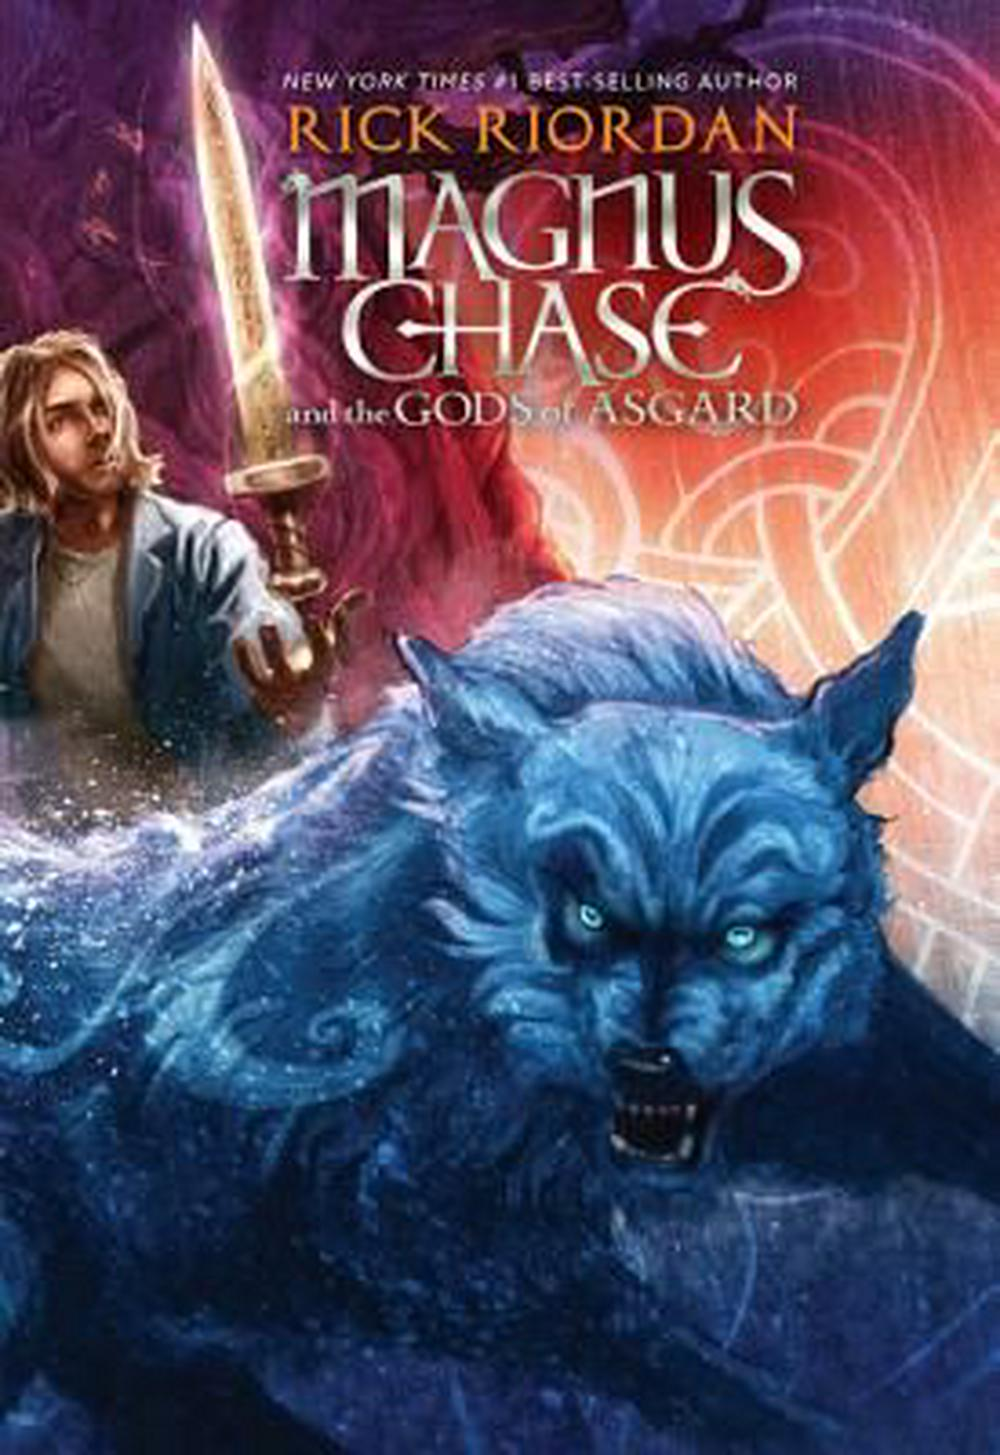 Magnus Chase and the Gods of Asgard Hardcover Boxed SetMagnus Chase and the Gods of Asgard